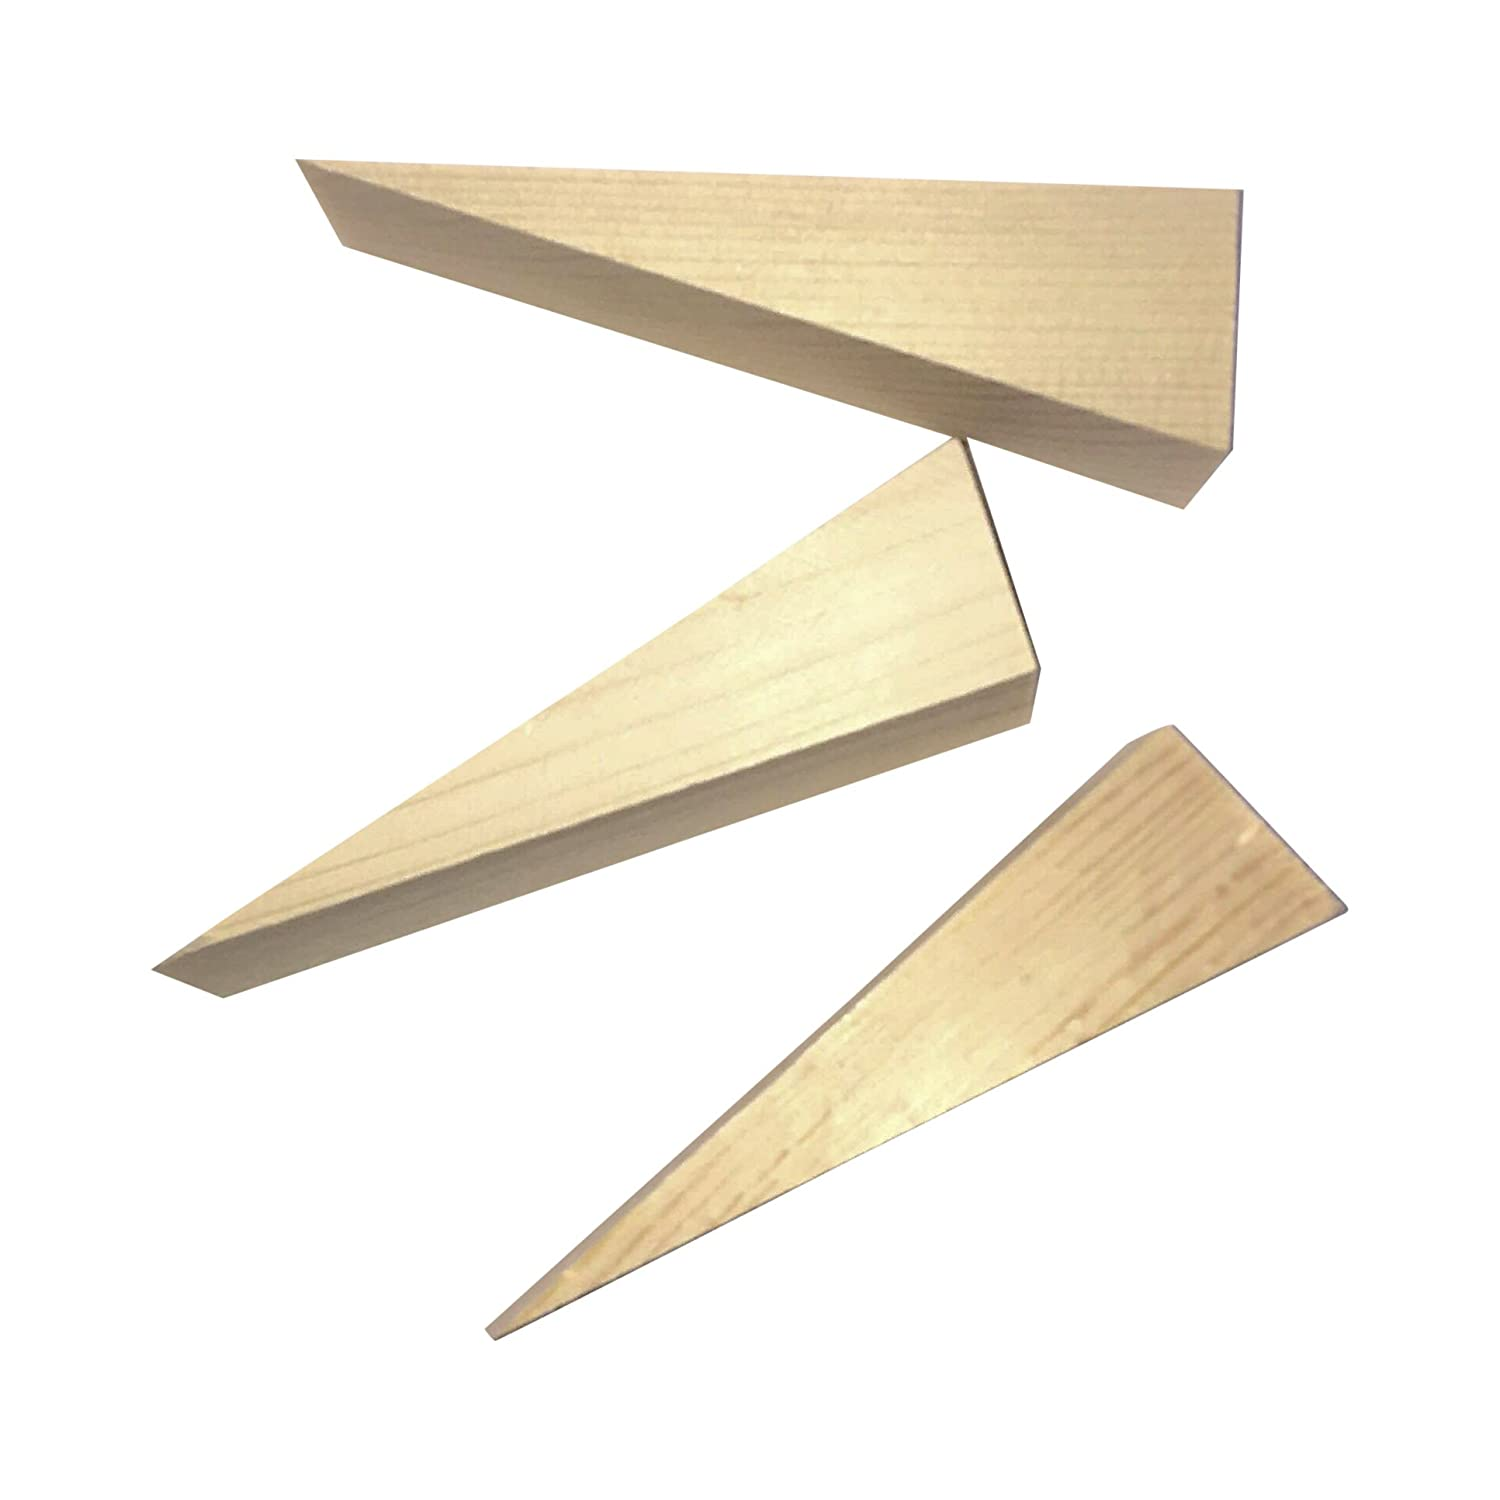 Wooden Non Slip Door Stop Stopper Wedge 3 Pack of Stoppers Hand Made for All Surfaces Home & Office Woodgrain Dudeck's Distributing